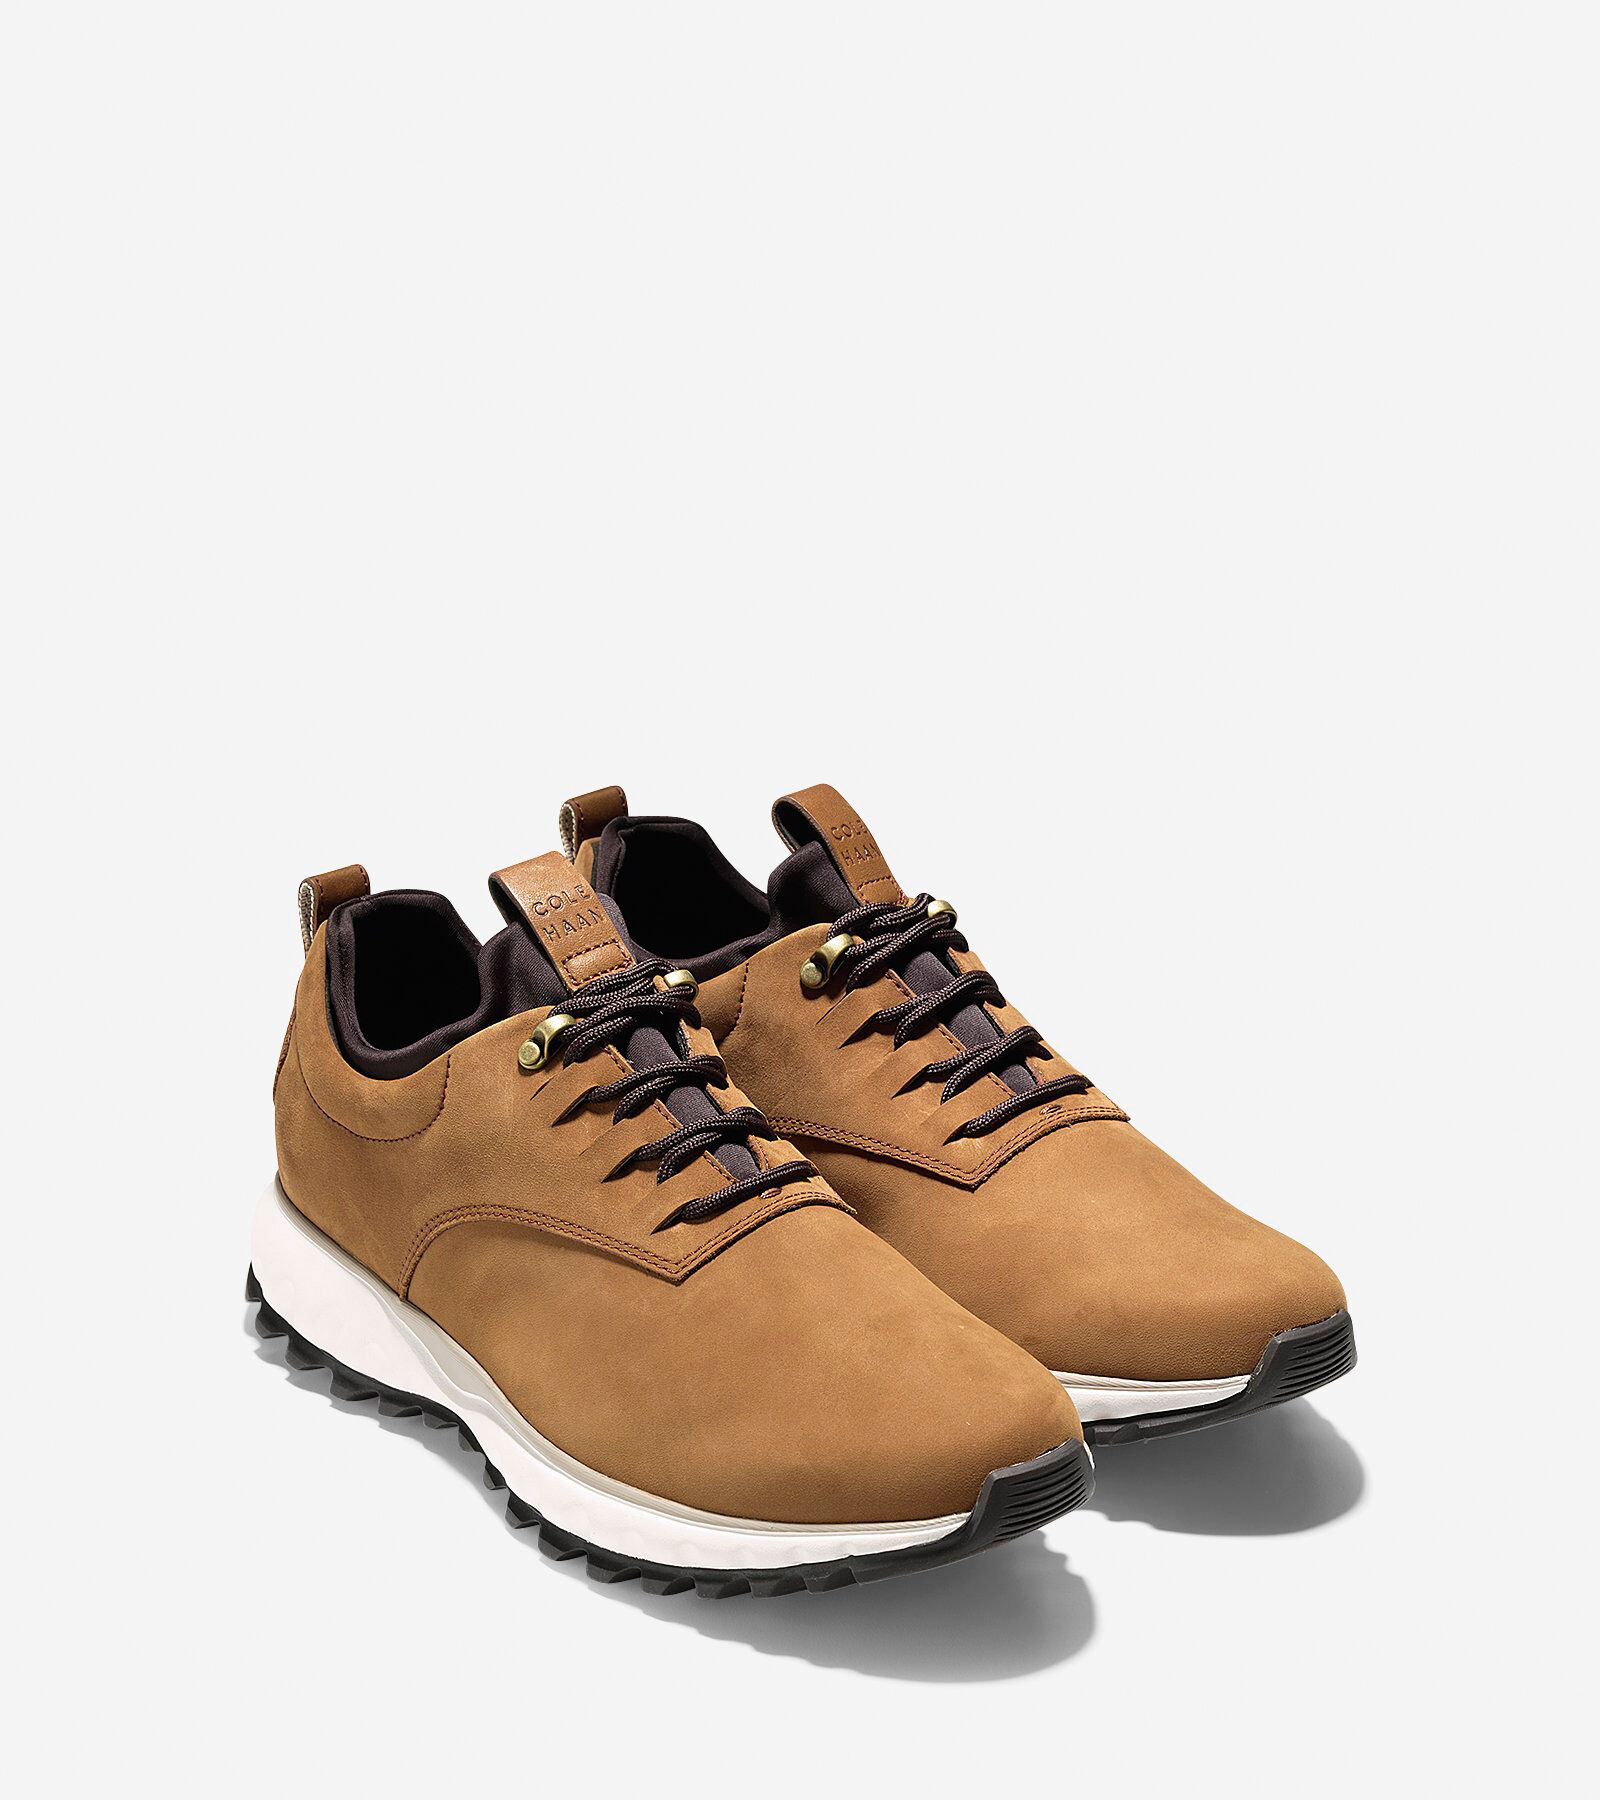 clearance sneakernews Cole Haan Men's Grand Explore ... big discount factory outlet cheap price buy cheap fashion Style LzfxU1C